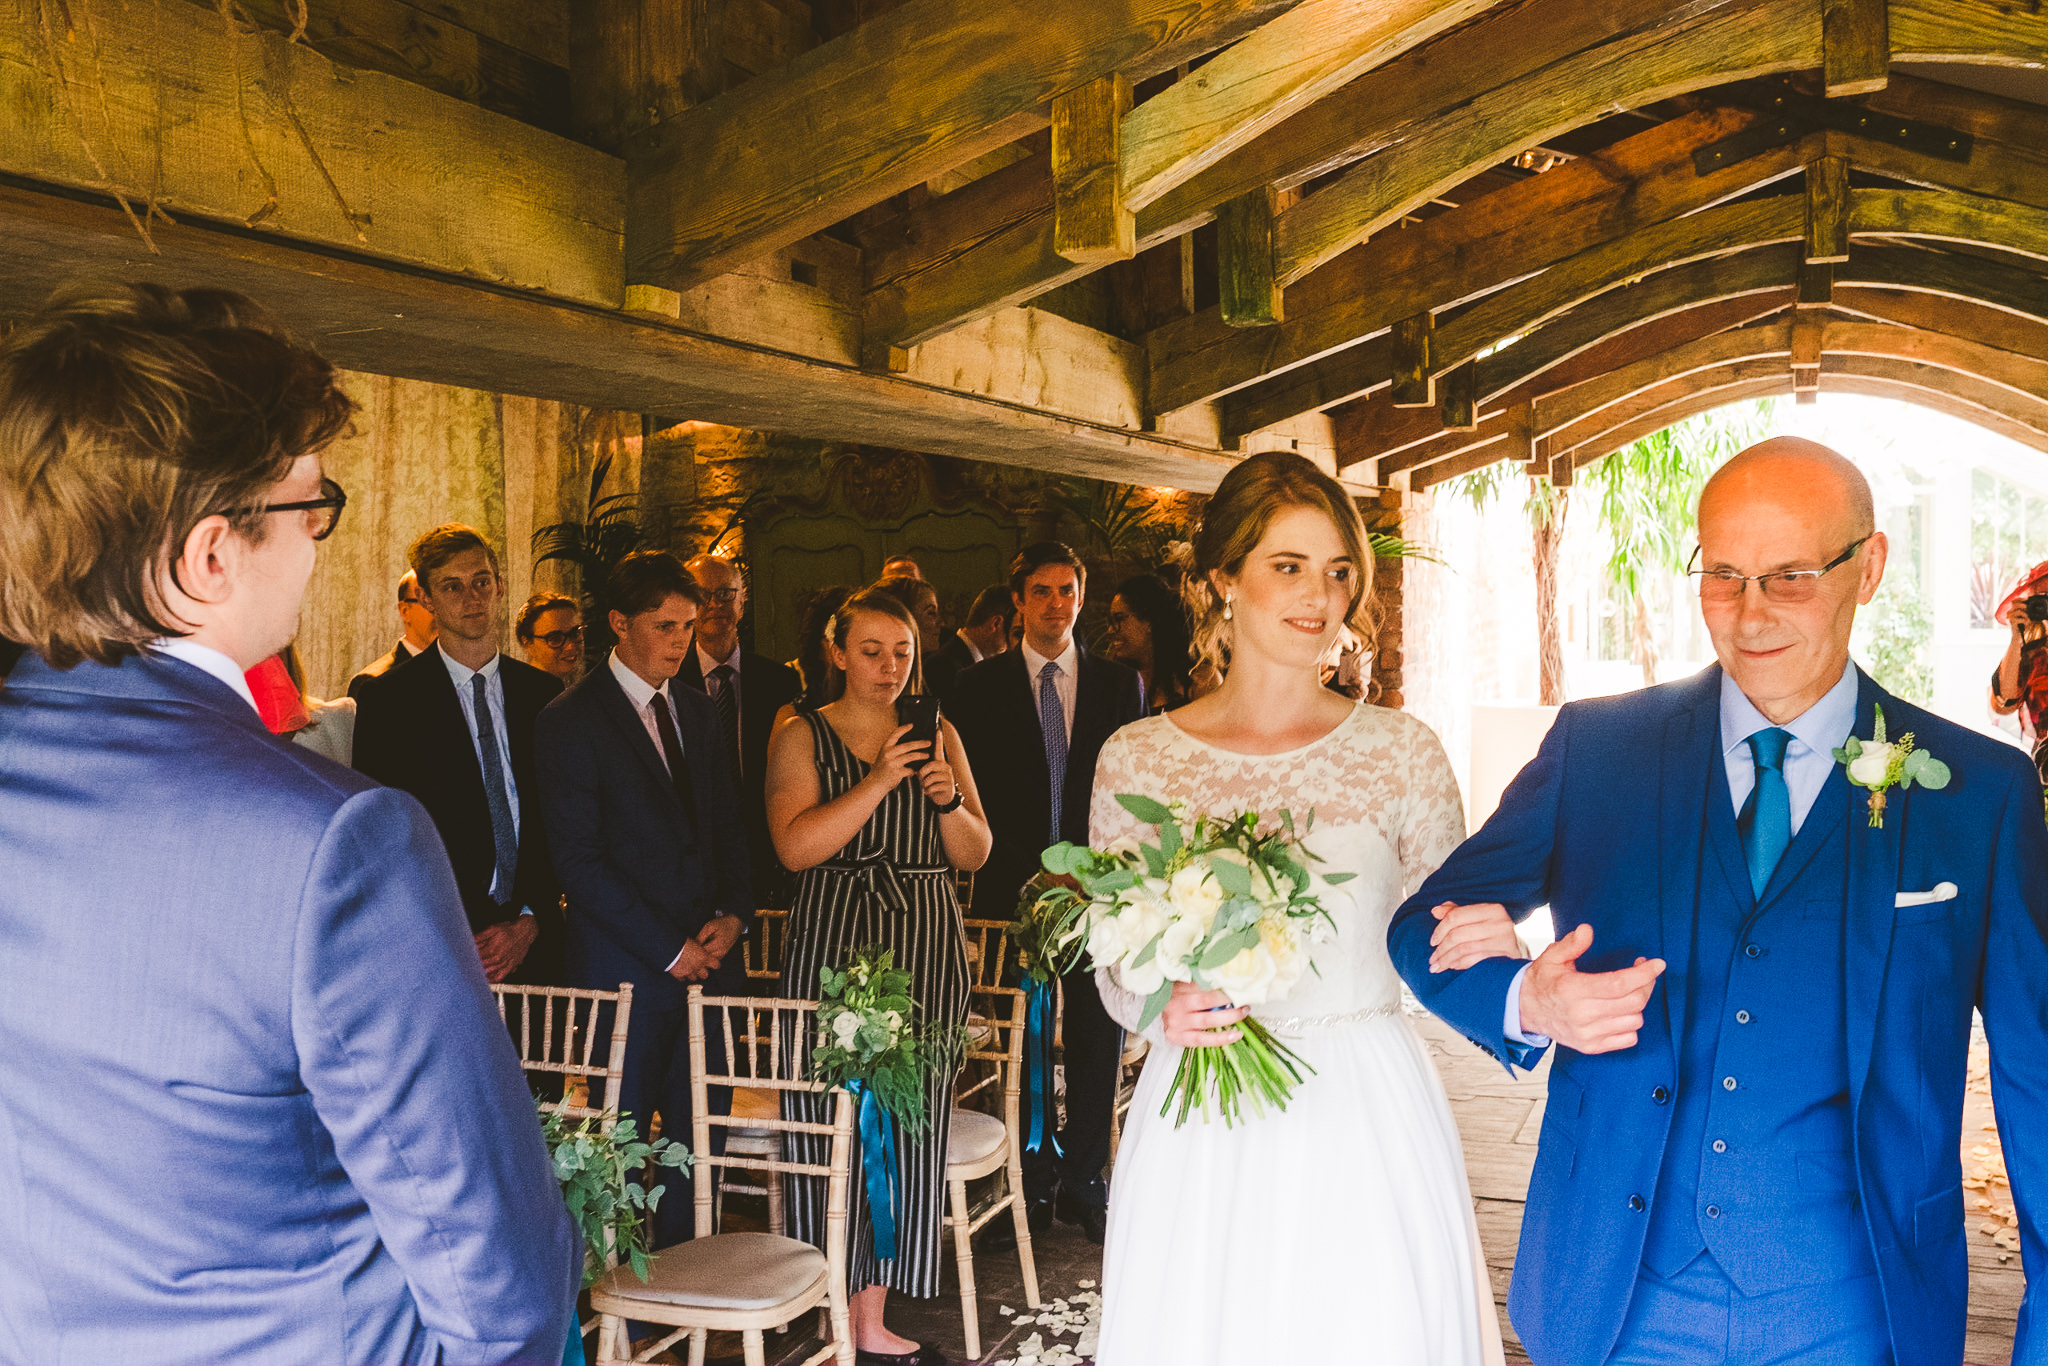 Bides, her father and the groom meet at the end of the aisle at Newton Hall